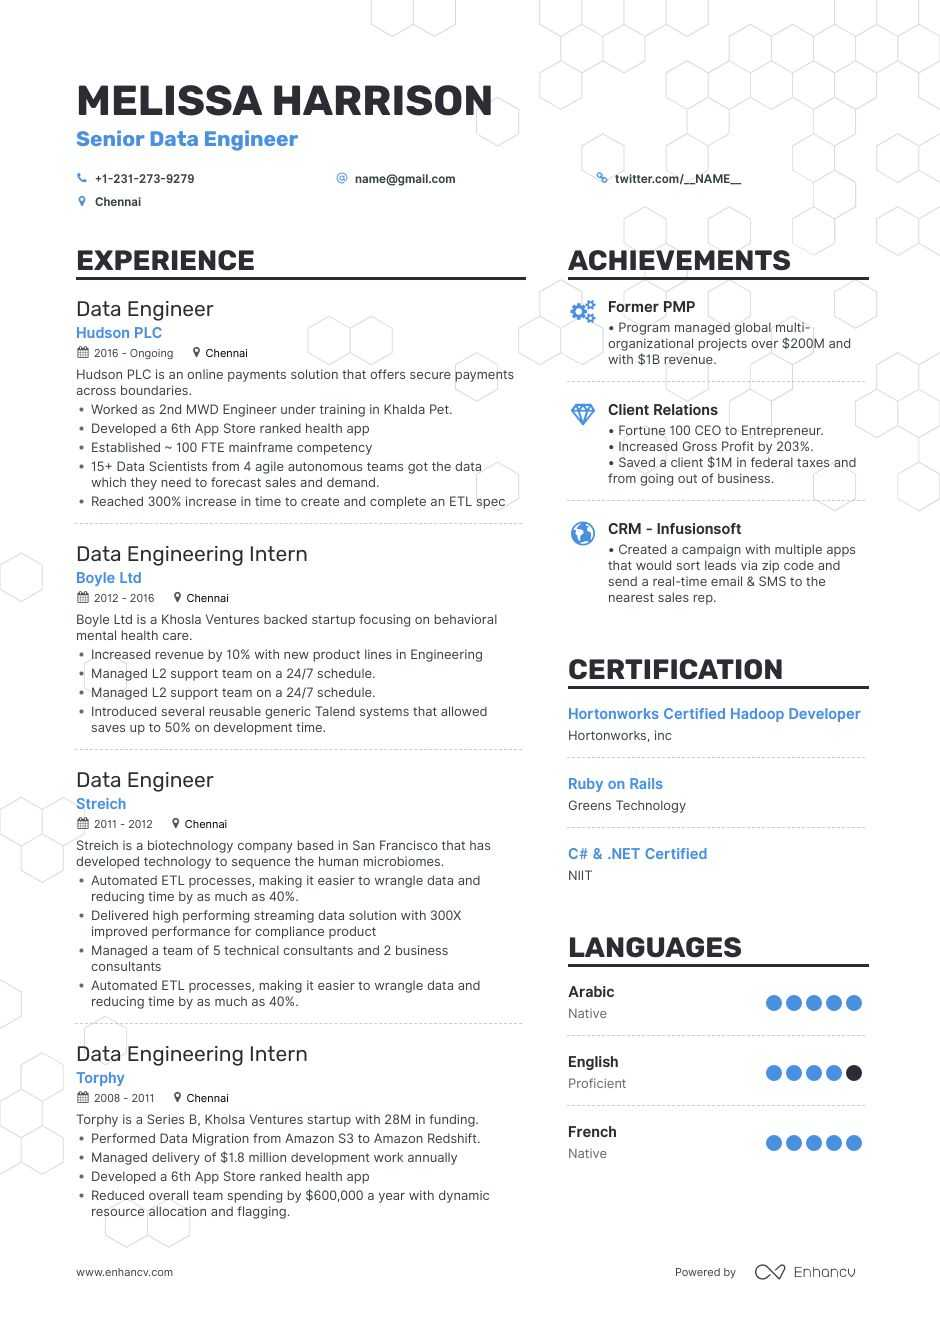 Data Engineer Resume Examples Do S And Don Ts For 2021 Enhancv